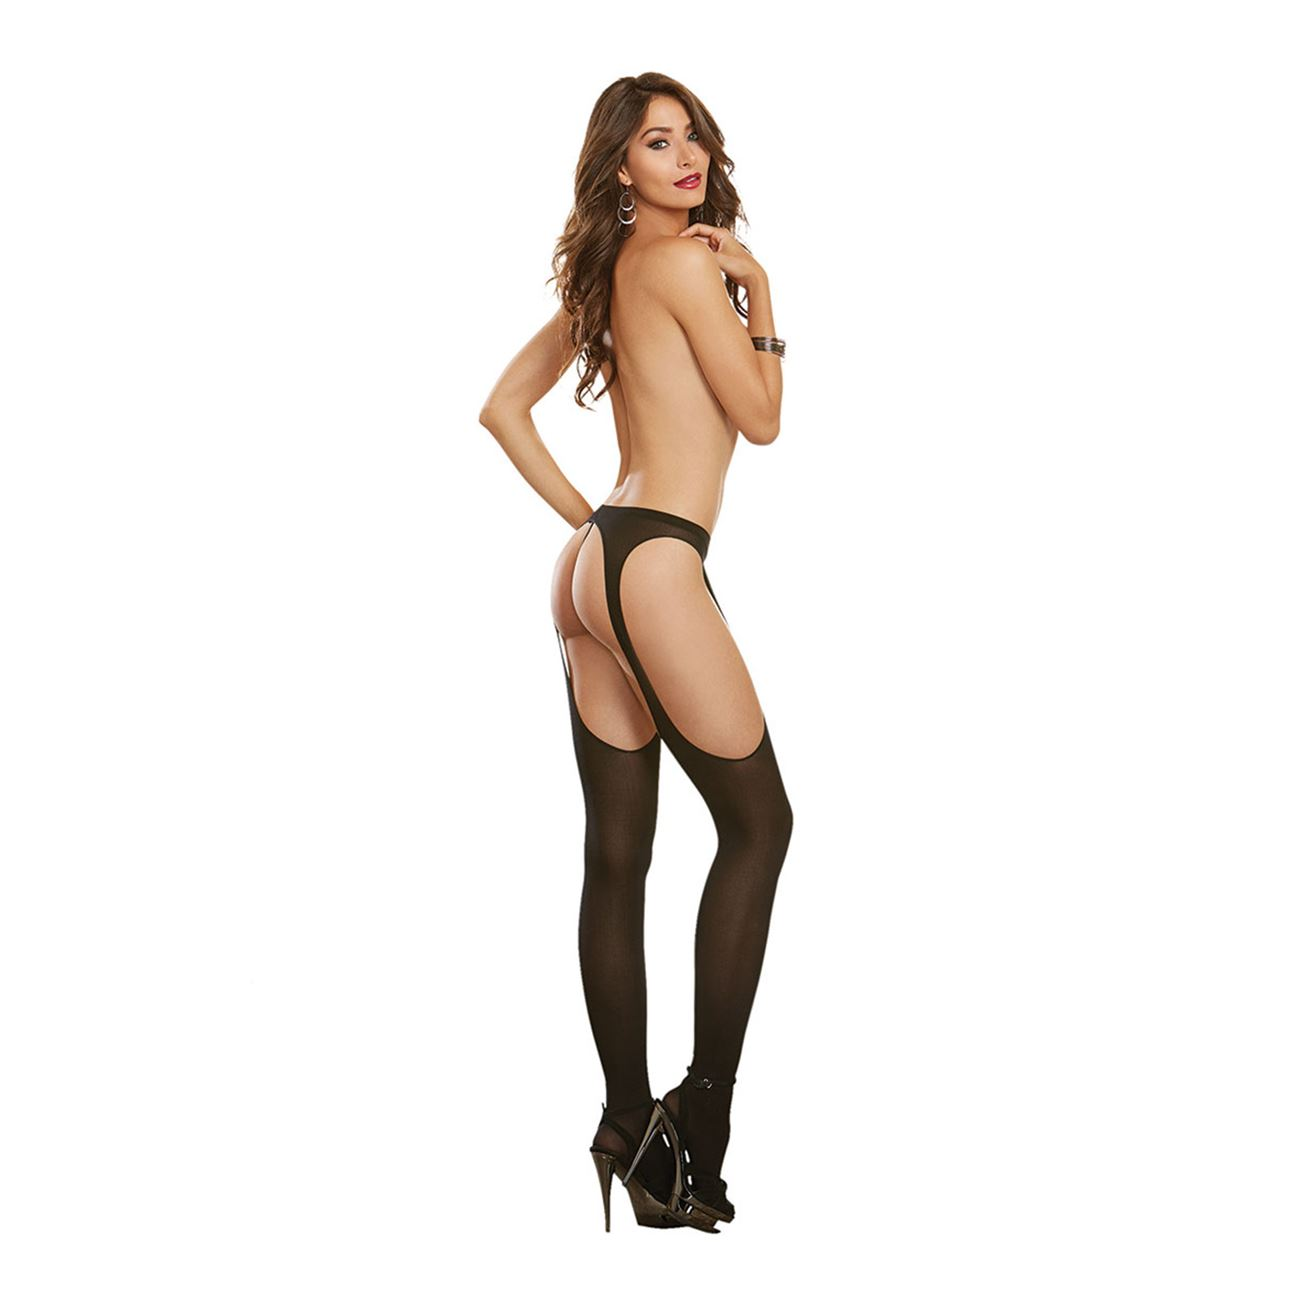 995111678 Dream Girl Dreamgirl Sheer Suspender Pantyhose   Full Sexy